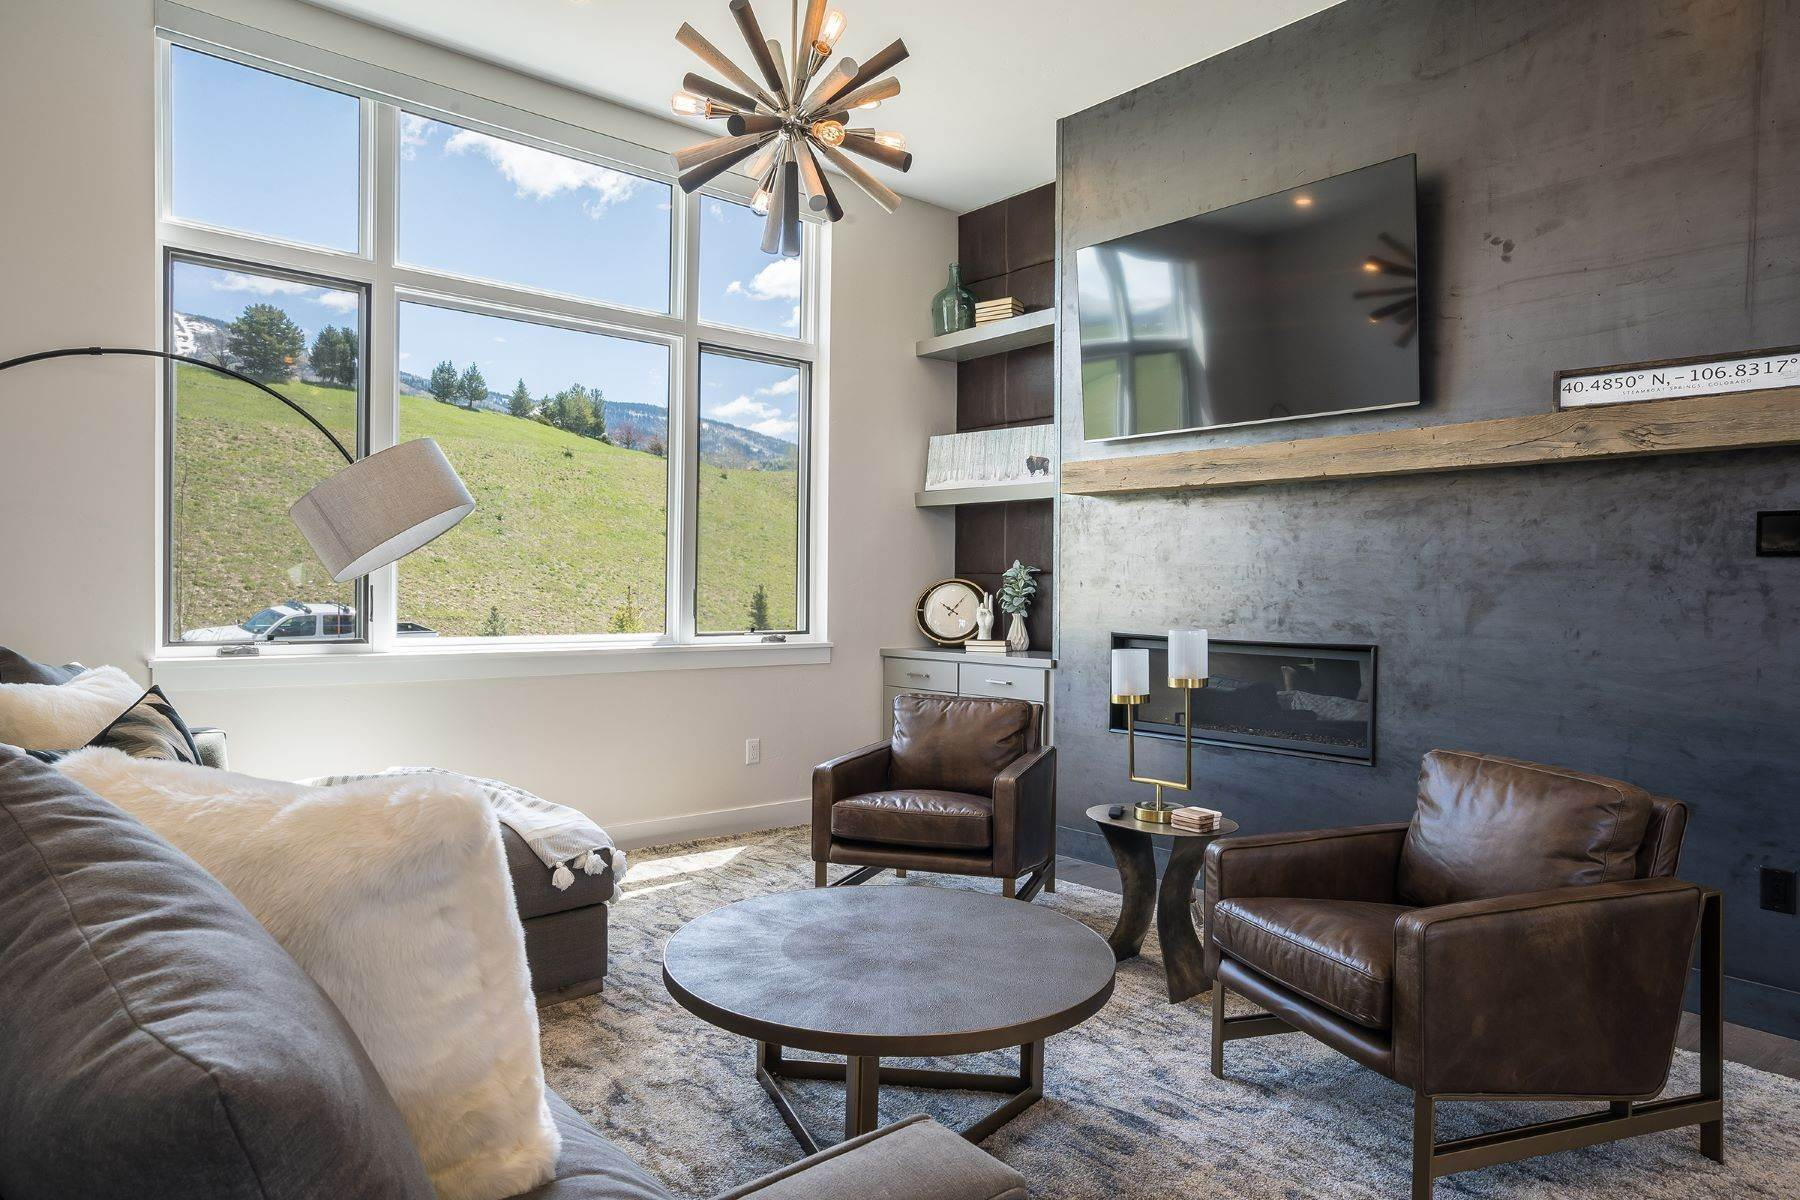 Single Family Homes for Sale at Flat Tops at Wildhorse Meadows 1390 Bangtail Way Steamboat Springs, Colorado 80487 United States